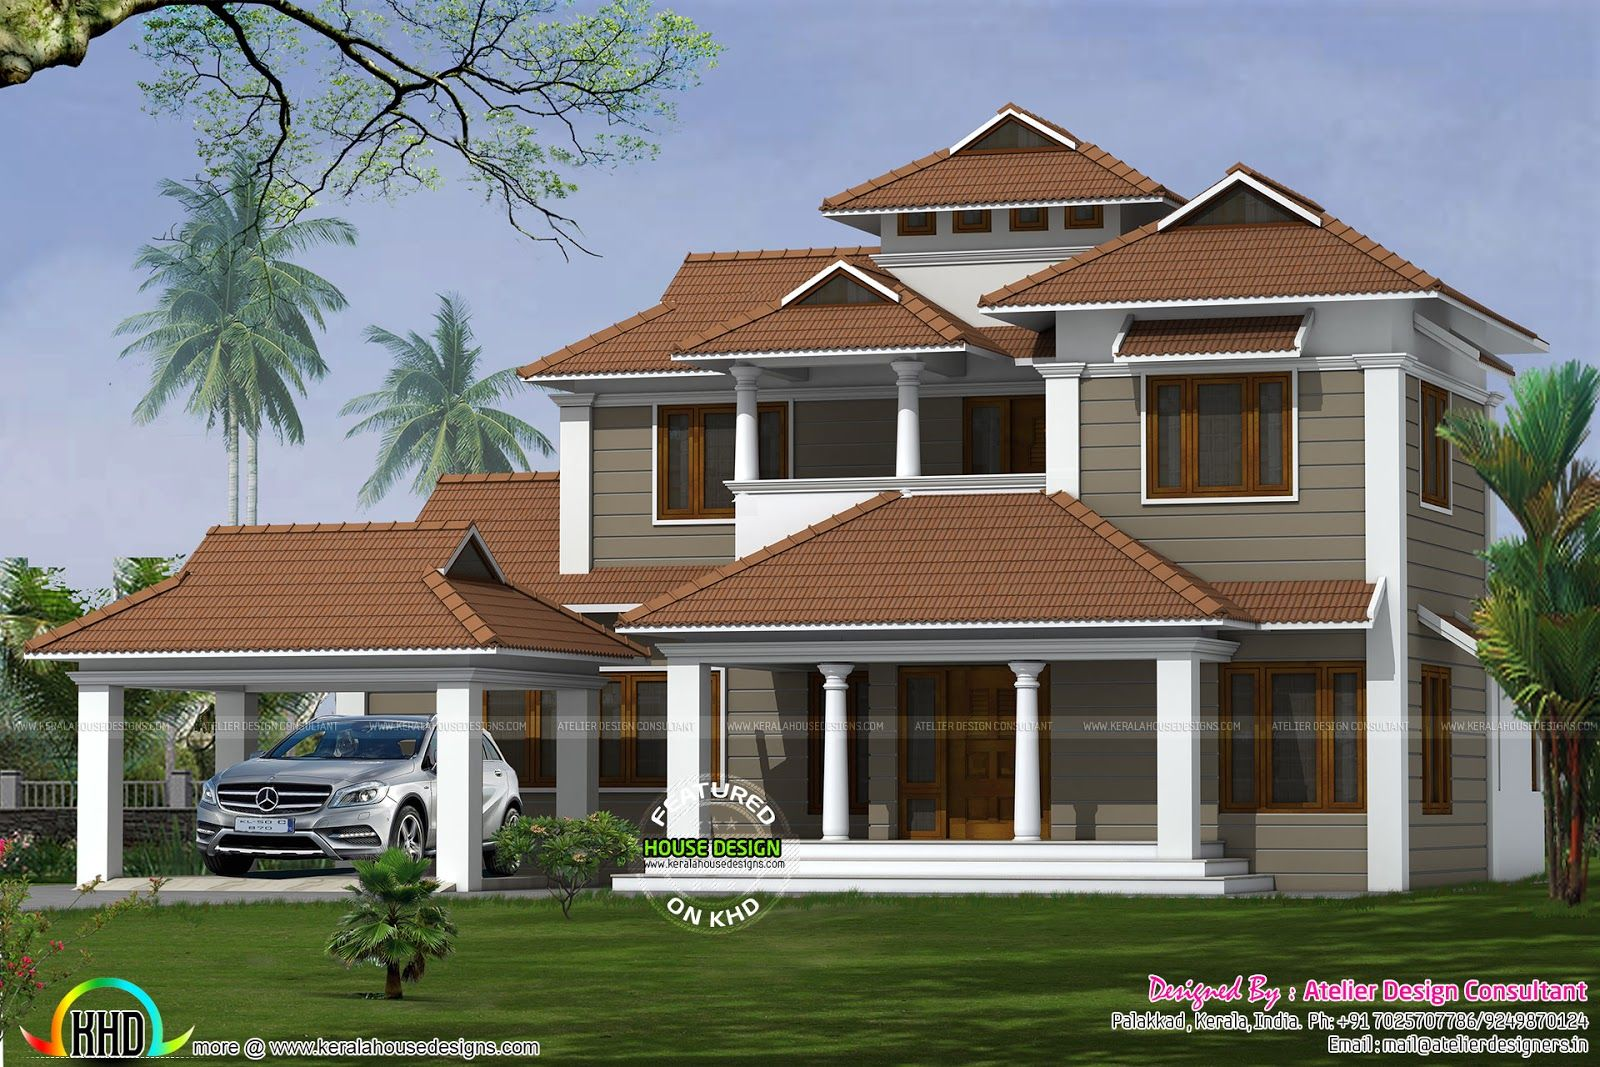 5 Bedroom , 2850 Square Feet Square Meter) Square Yards) Traditional Model  Home Architecture. Design Provided By Atelier Design Consultant, Palakkad,  ...